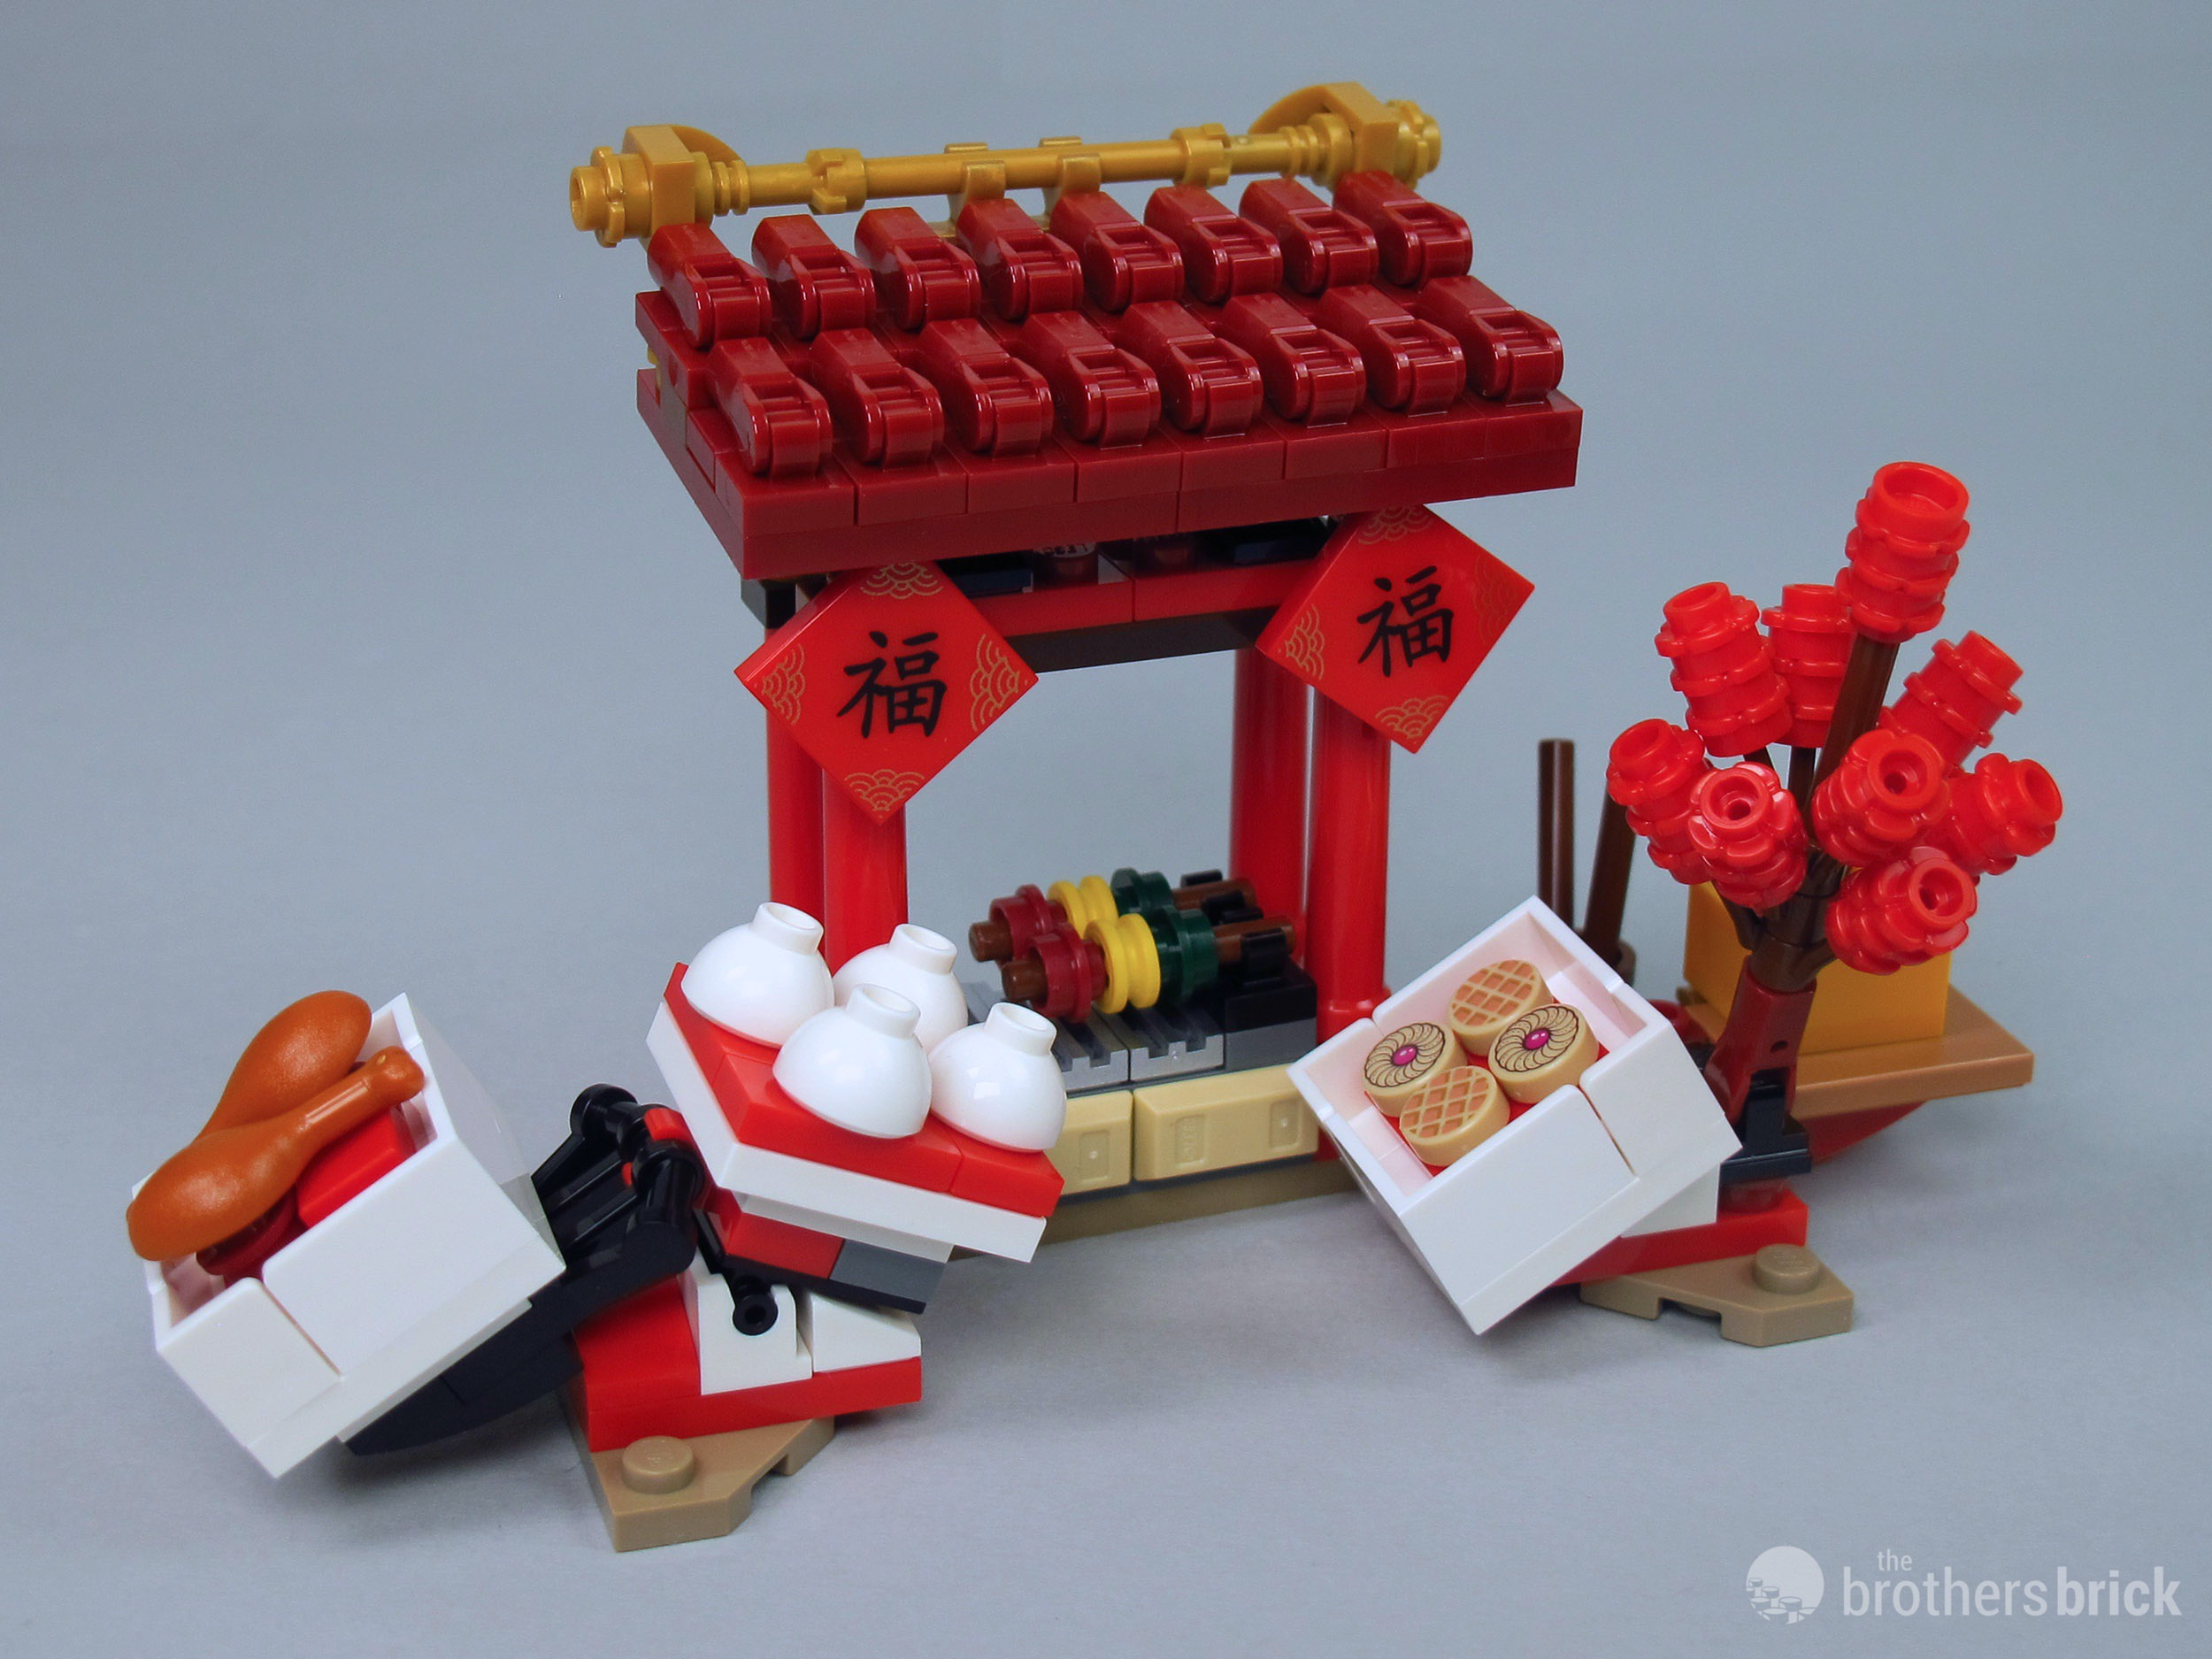 Lego 80105 Chinese New Year Temple Fair Food Stall 1 The Brothers Brick The Brothers Brick